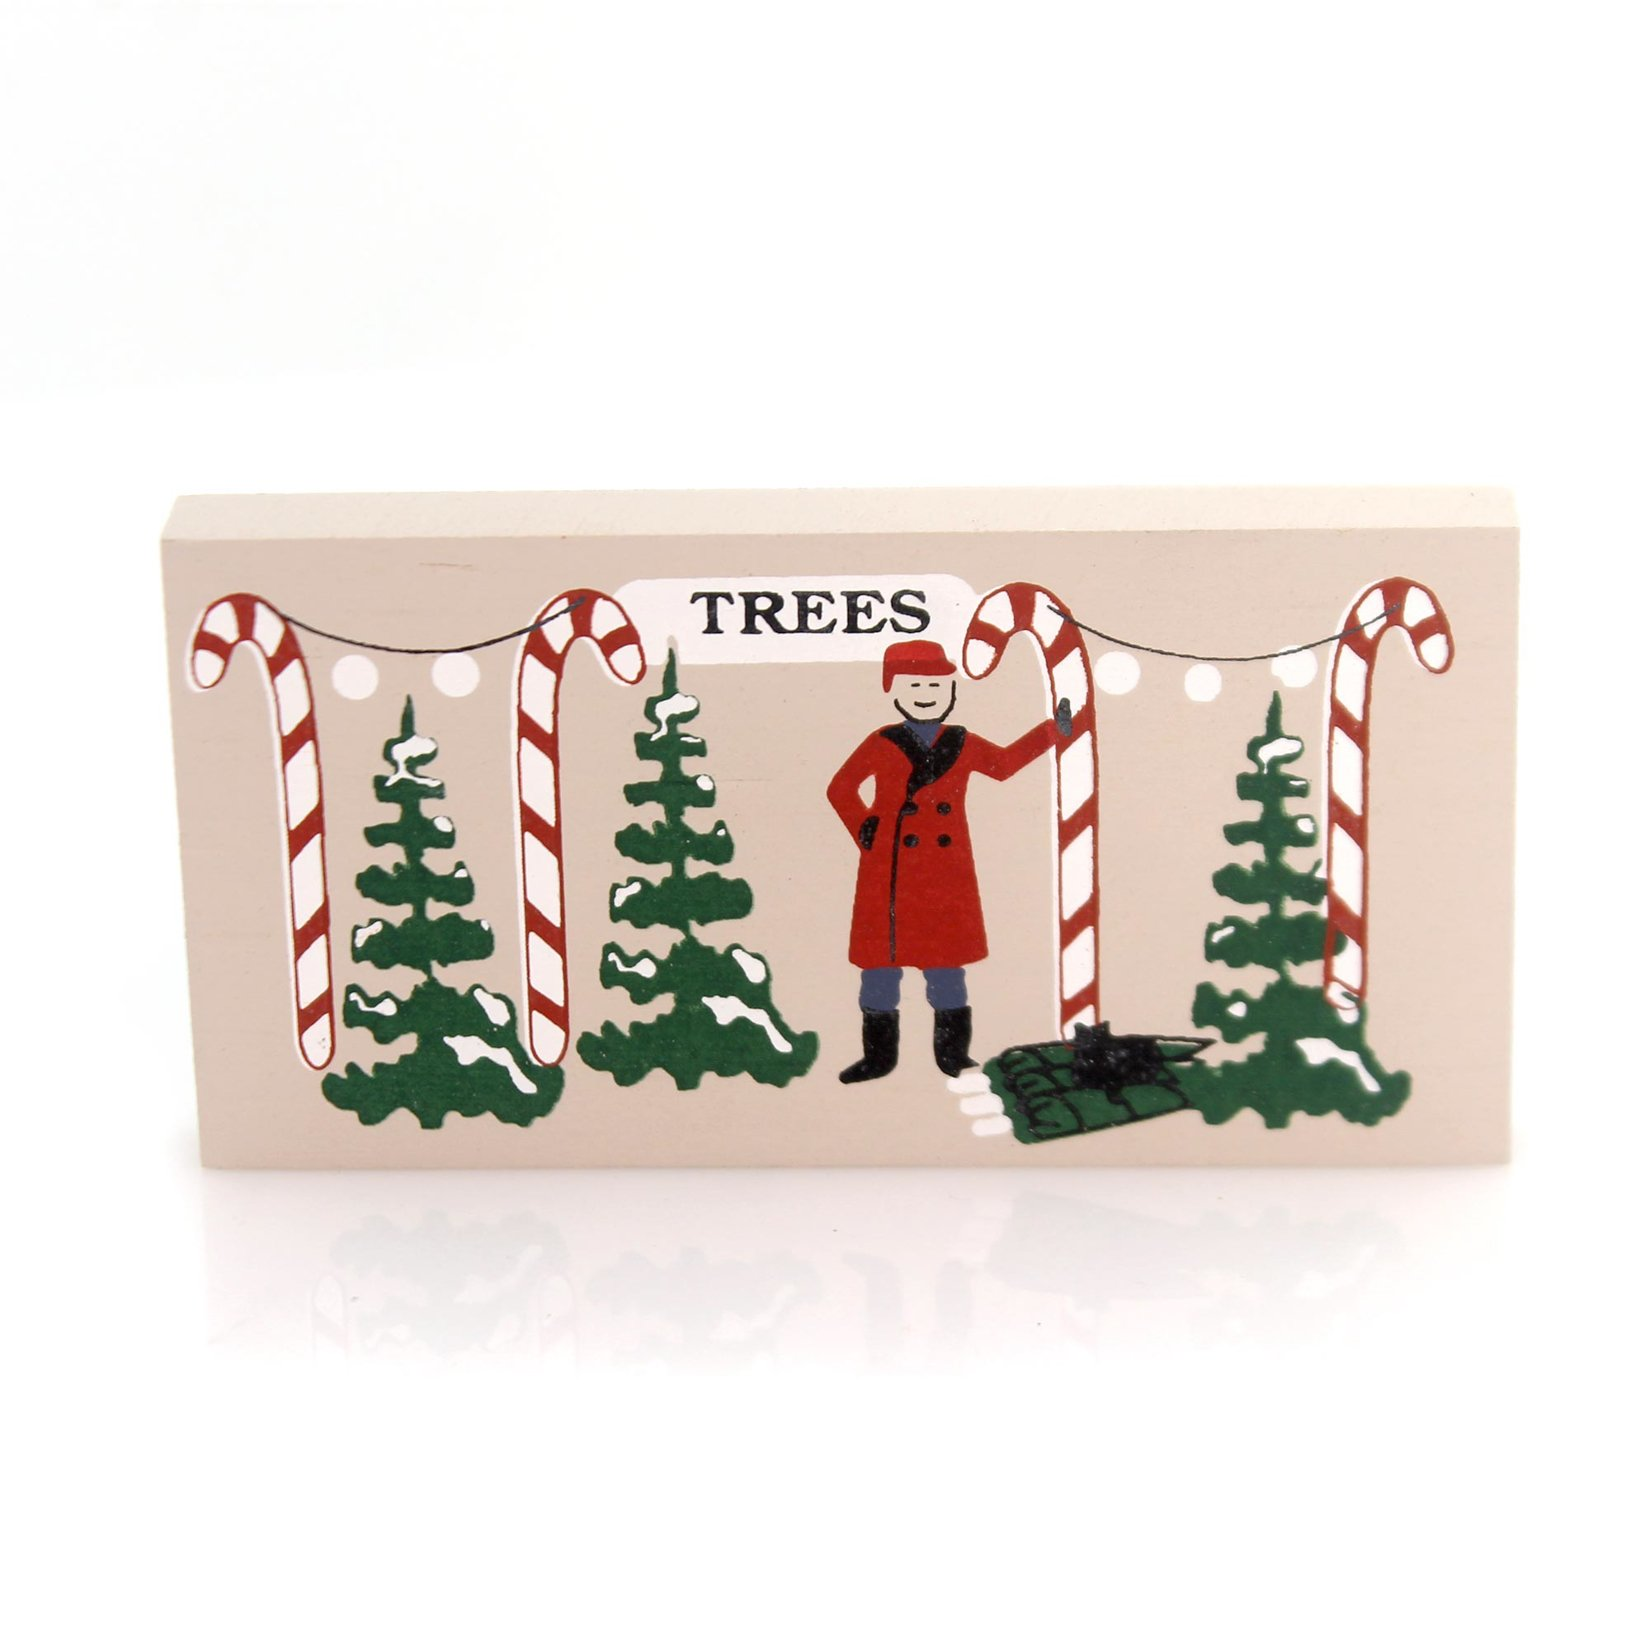 CATS MEOW VILLAGE Christmas Tree LOT Wood Accessory Retired Christmas 172 cm